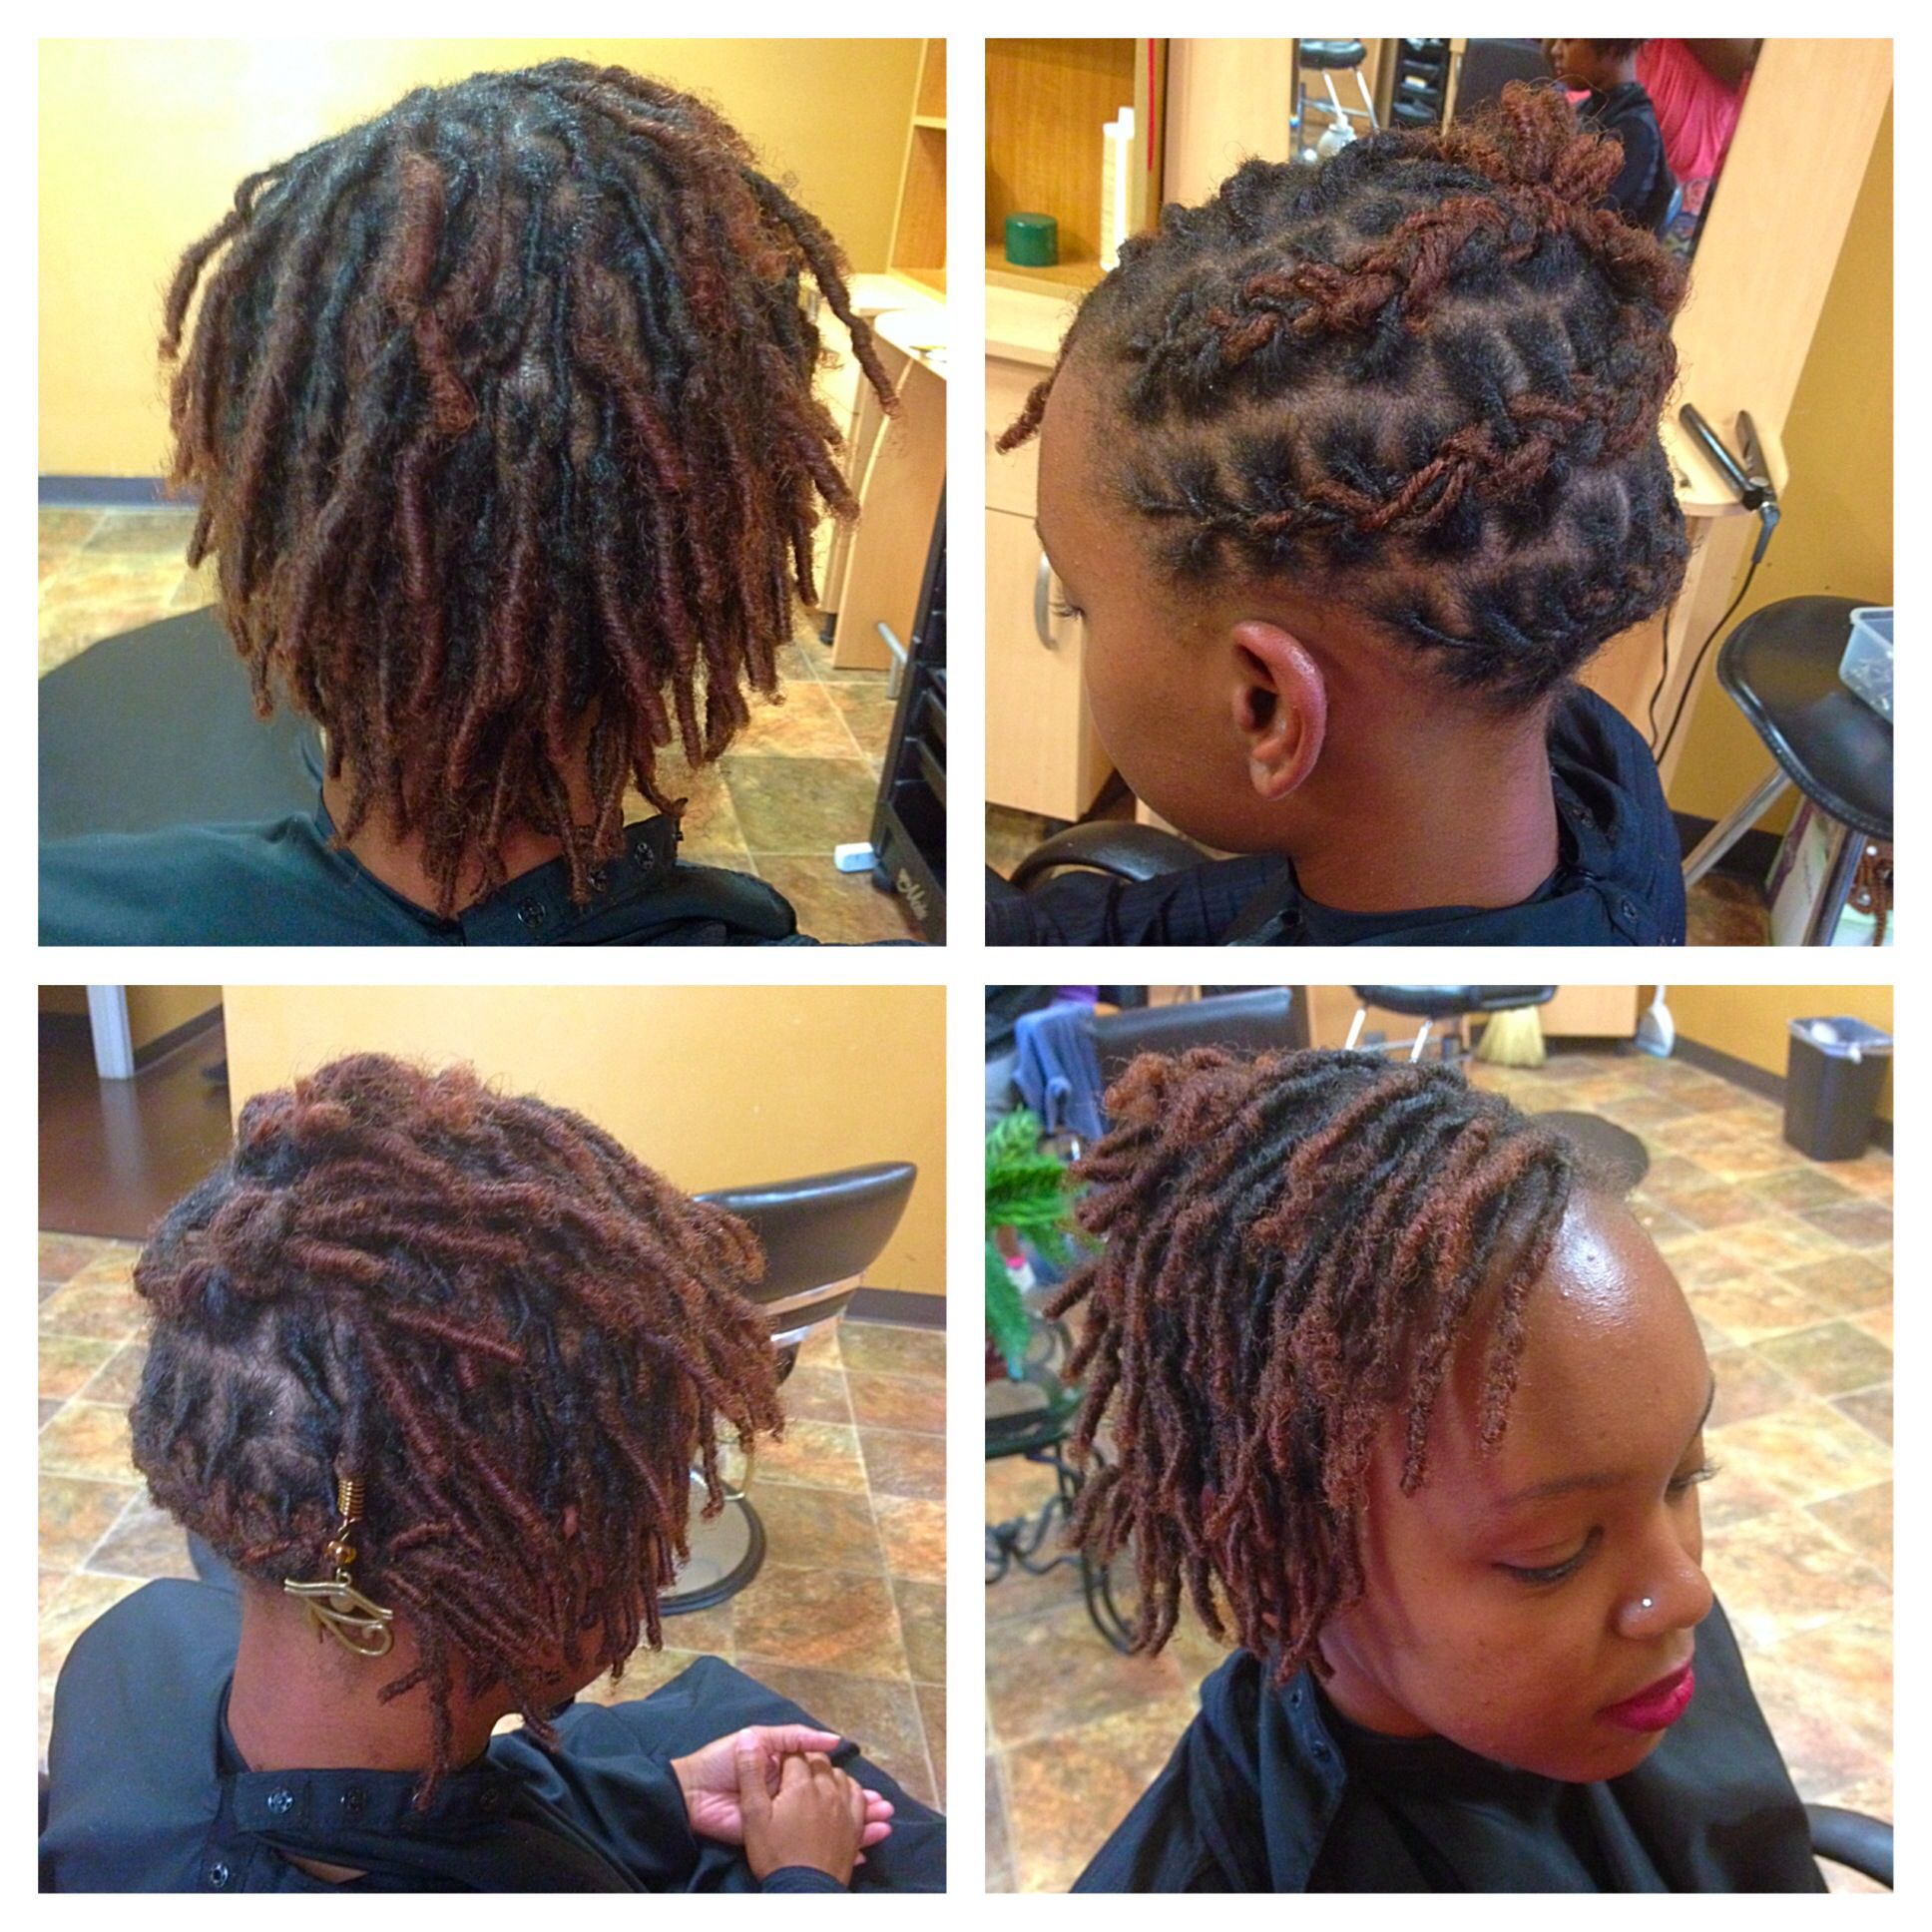 Pin By D Kia On Hair N Body In 2020 Hair Styles Locs Hairstyles Dreads Short Hair